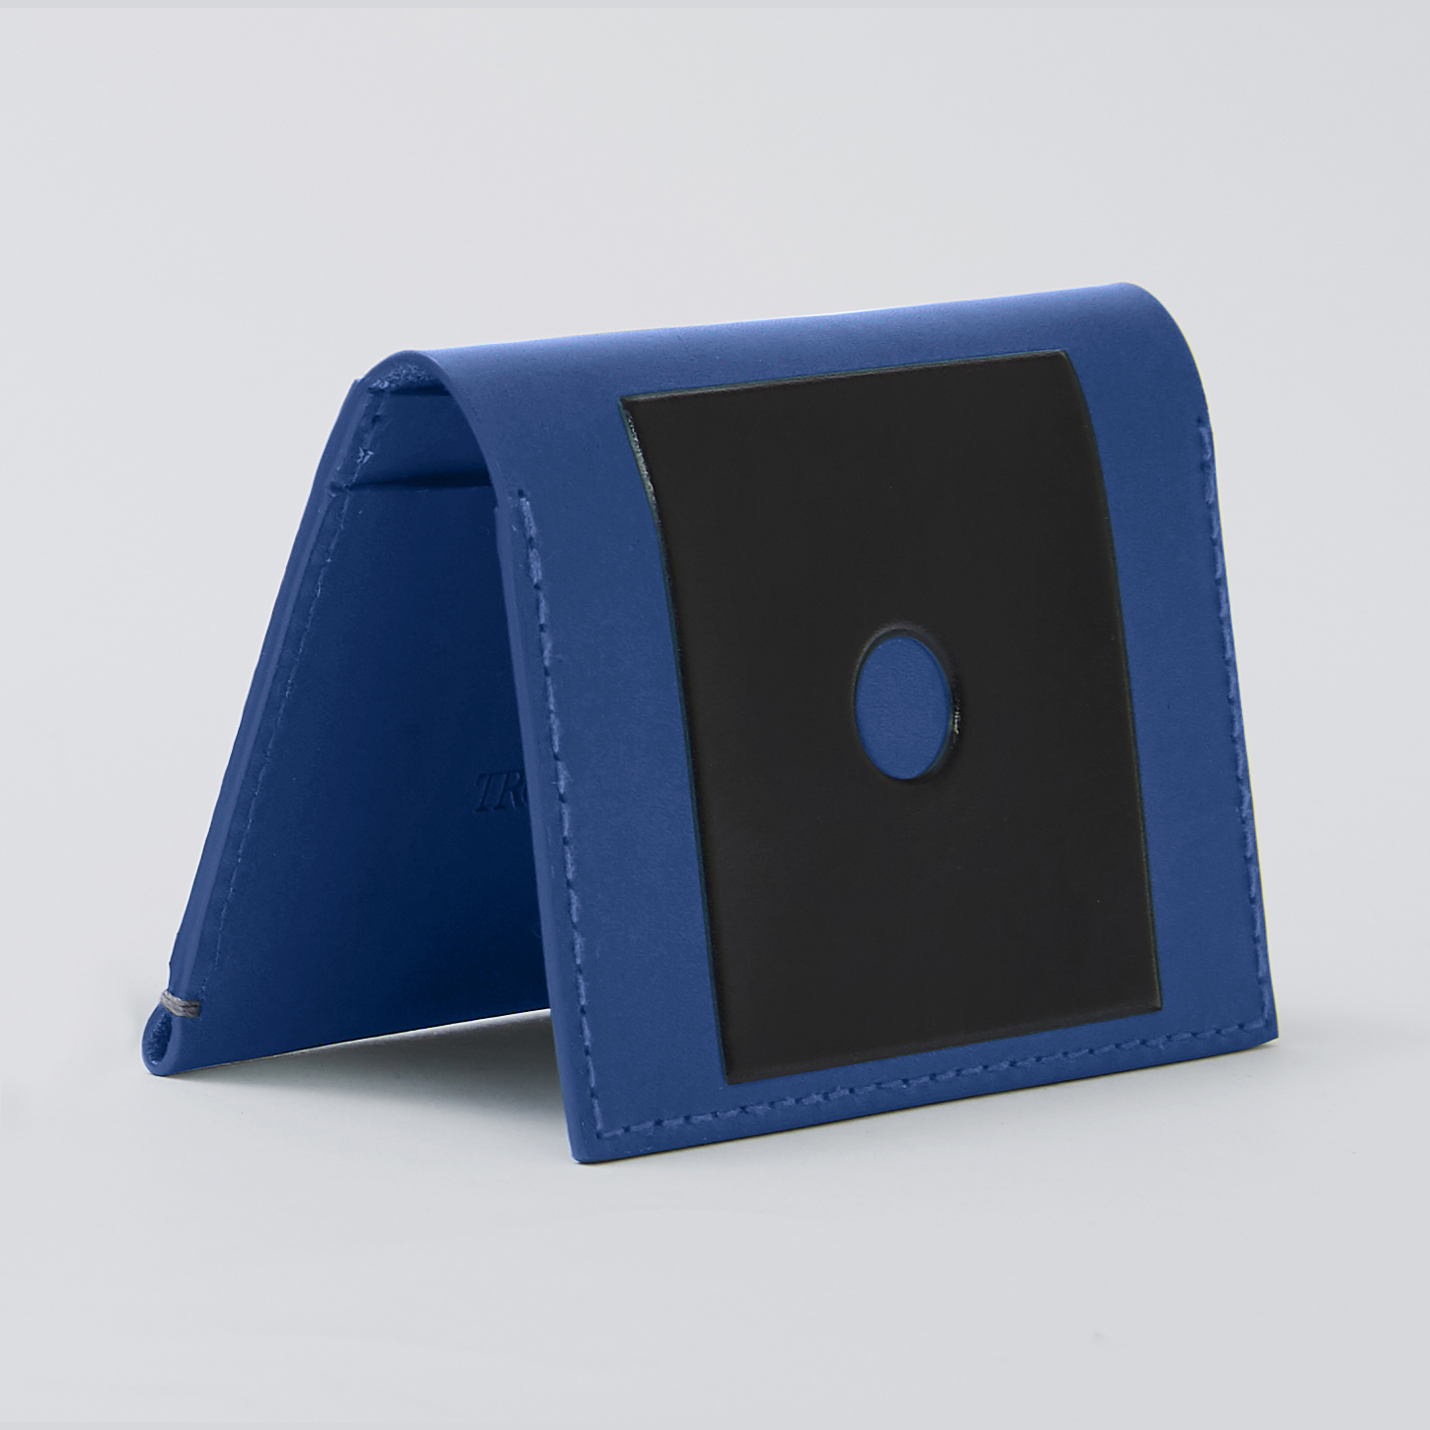 NEW Troubadour Colourful Wallet Collection - Blue Card Wallet.jpg